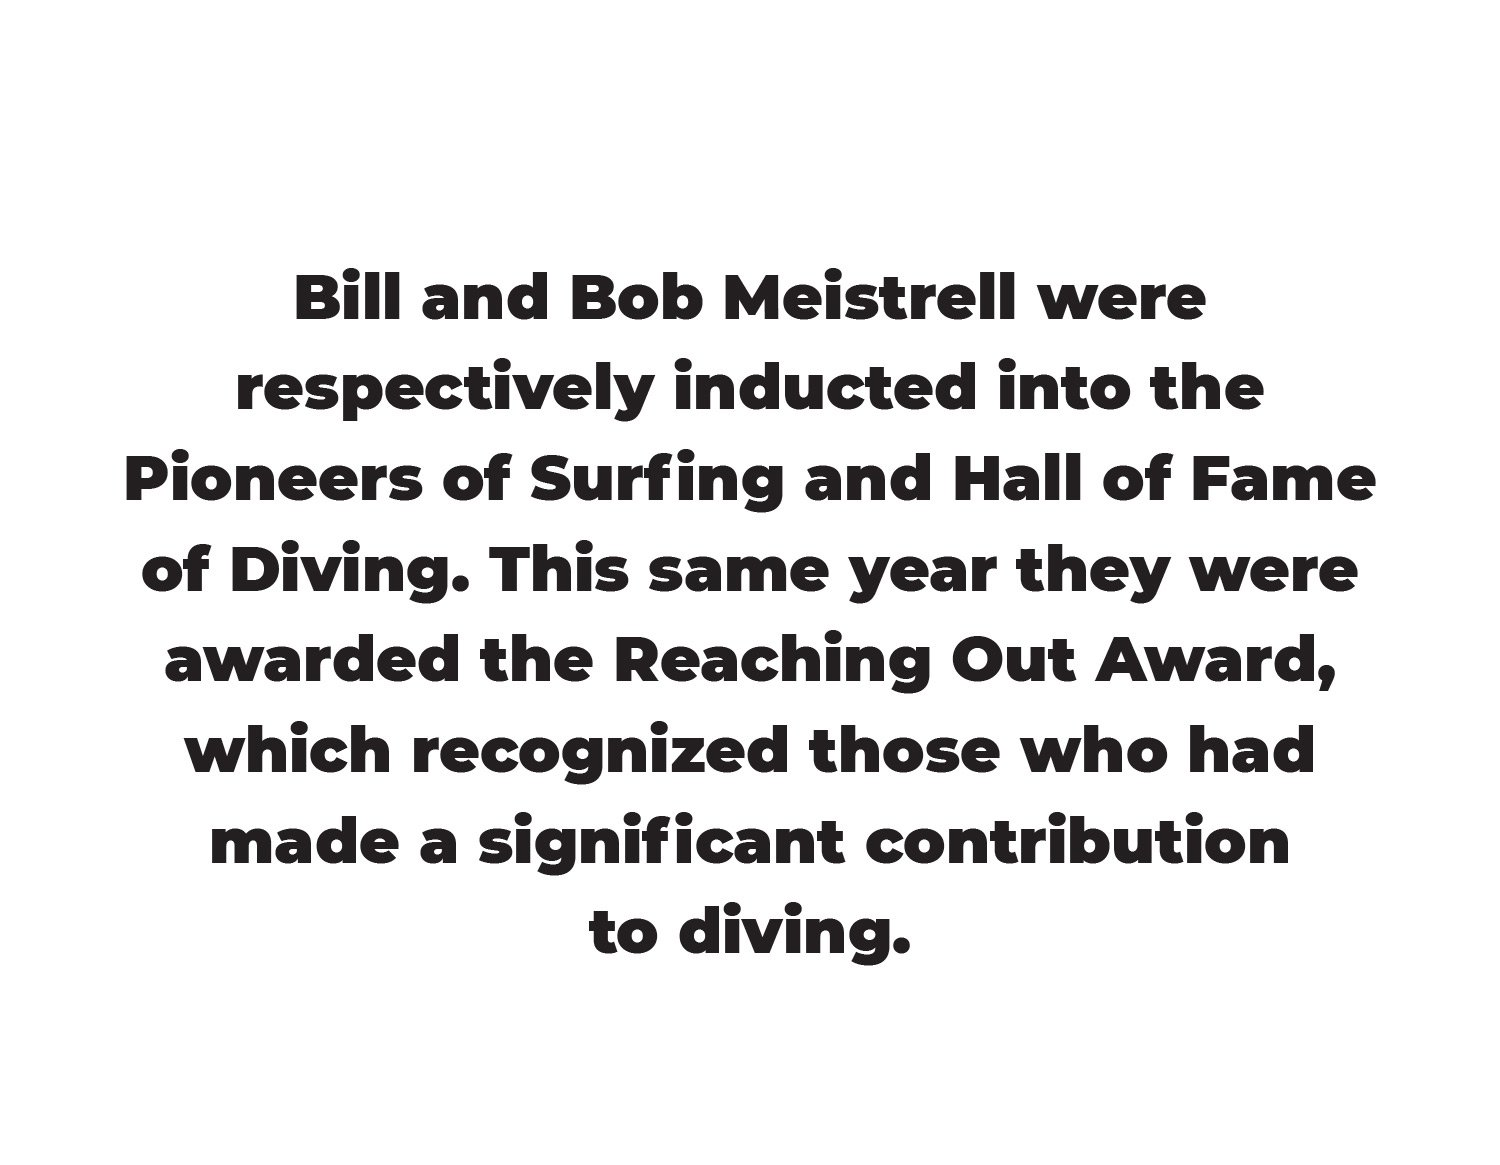 Bill and Bob Meistrell were respectively inducted into the Pioneers of Surfing and Hall of Fame of Diving. This same year they were awarded the Reaching Out Award, which recognized those who had made a significant contribution to diving.